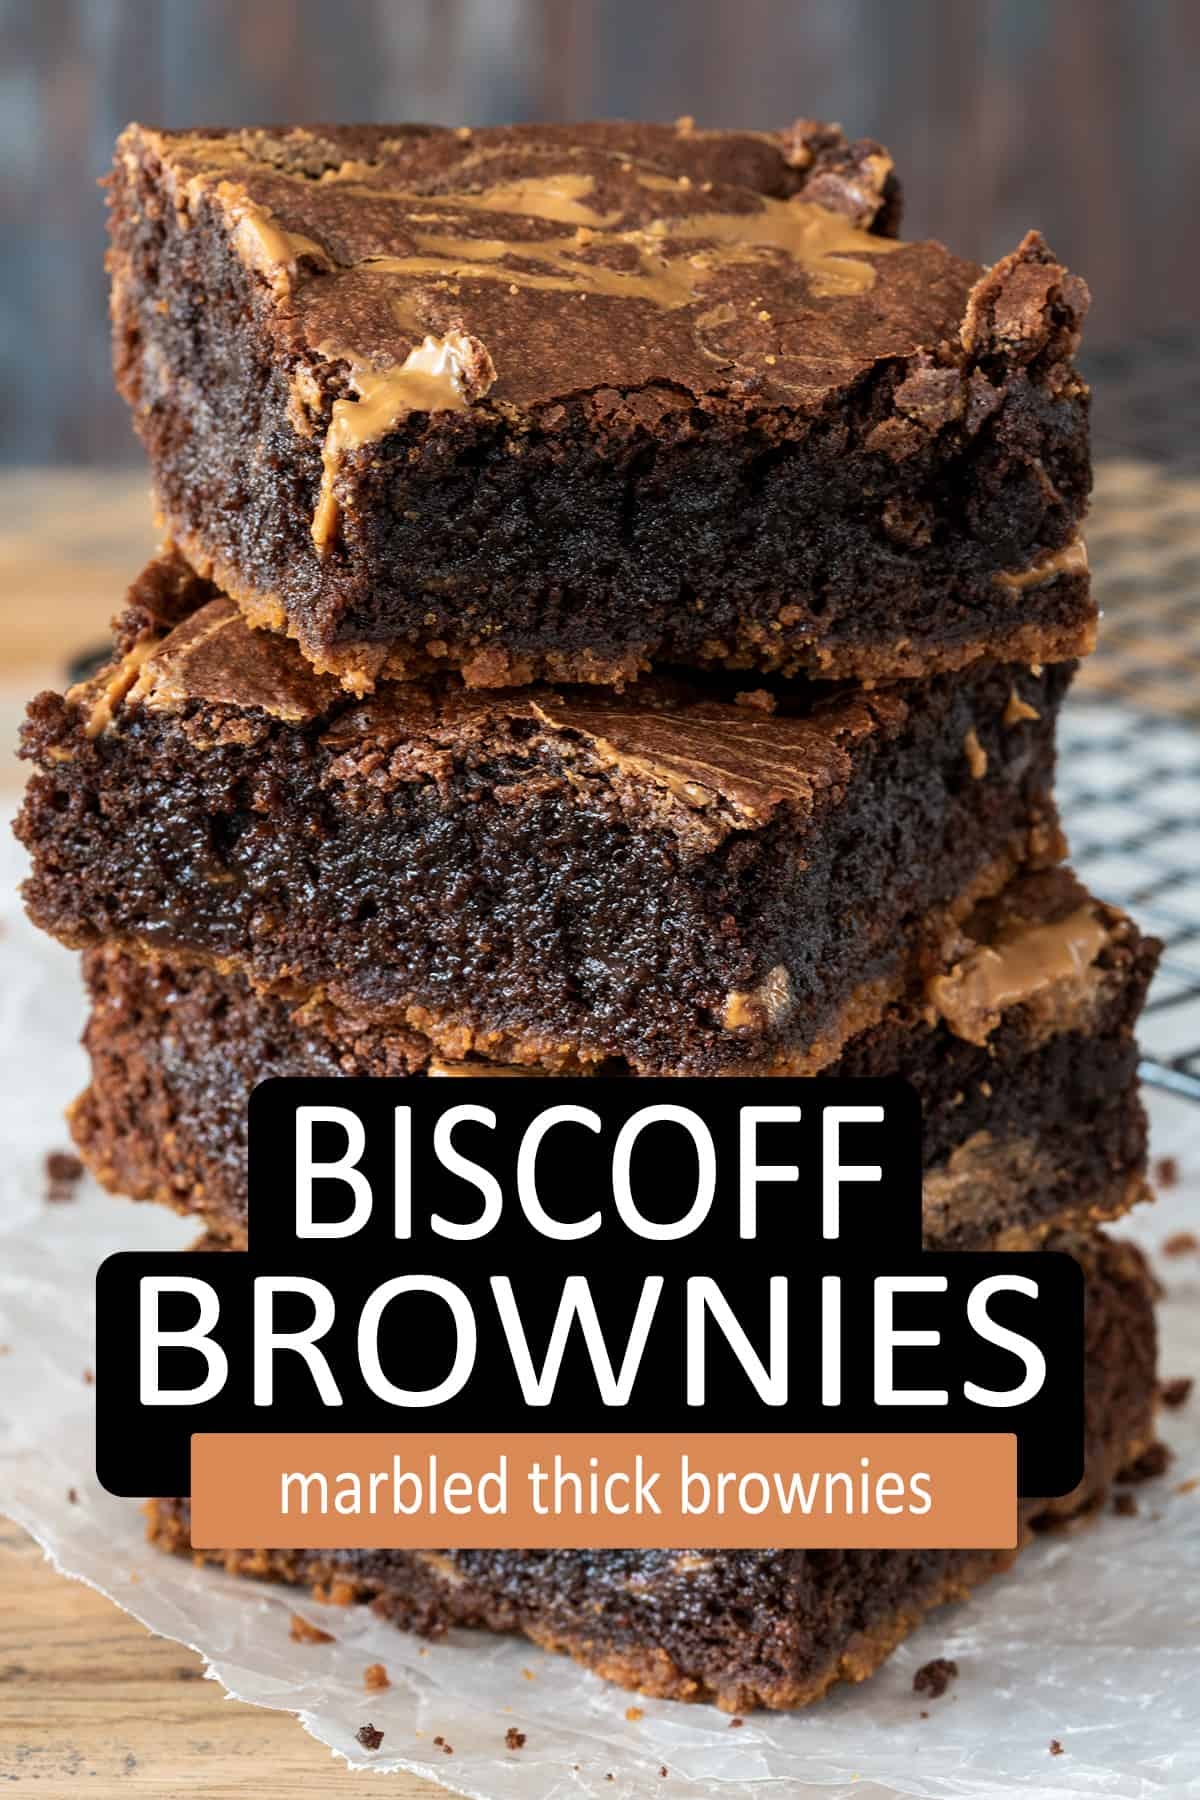 Biscoff Brownies stacked on parchment paper.